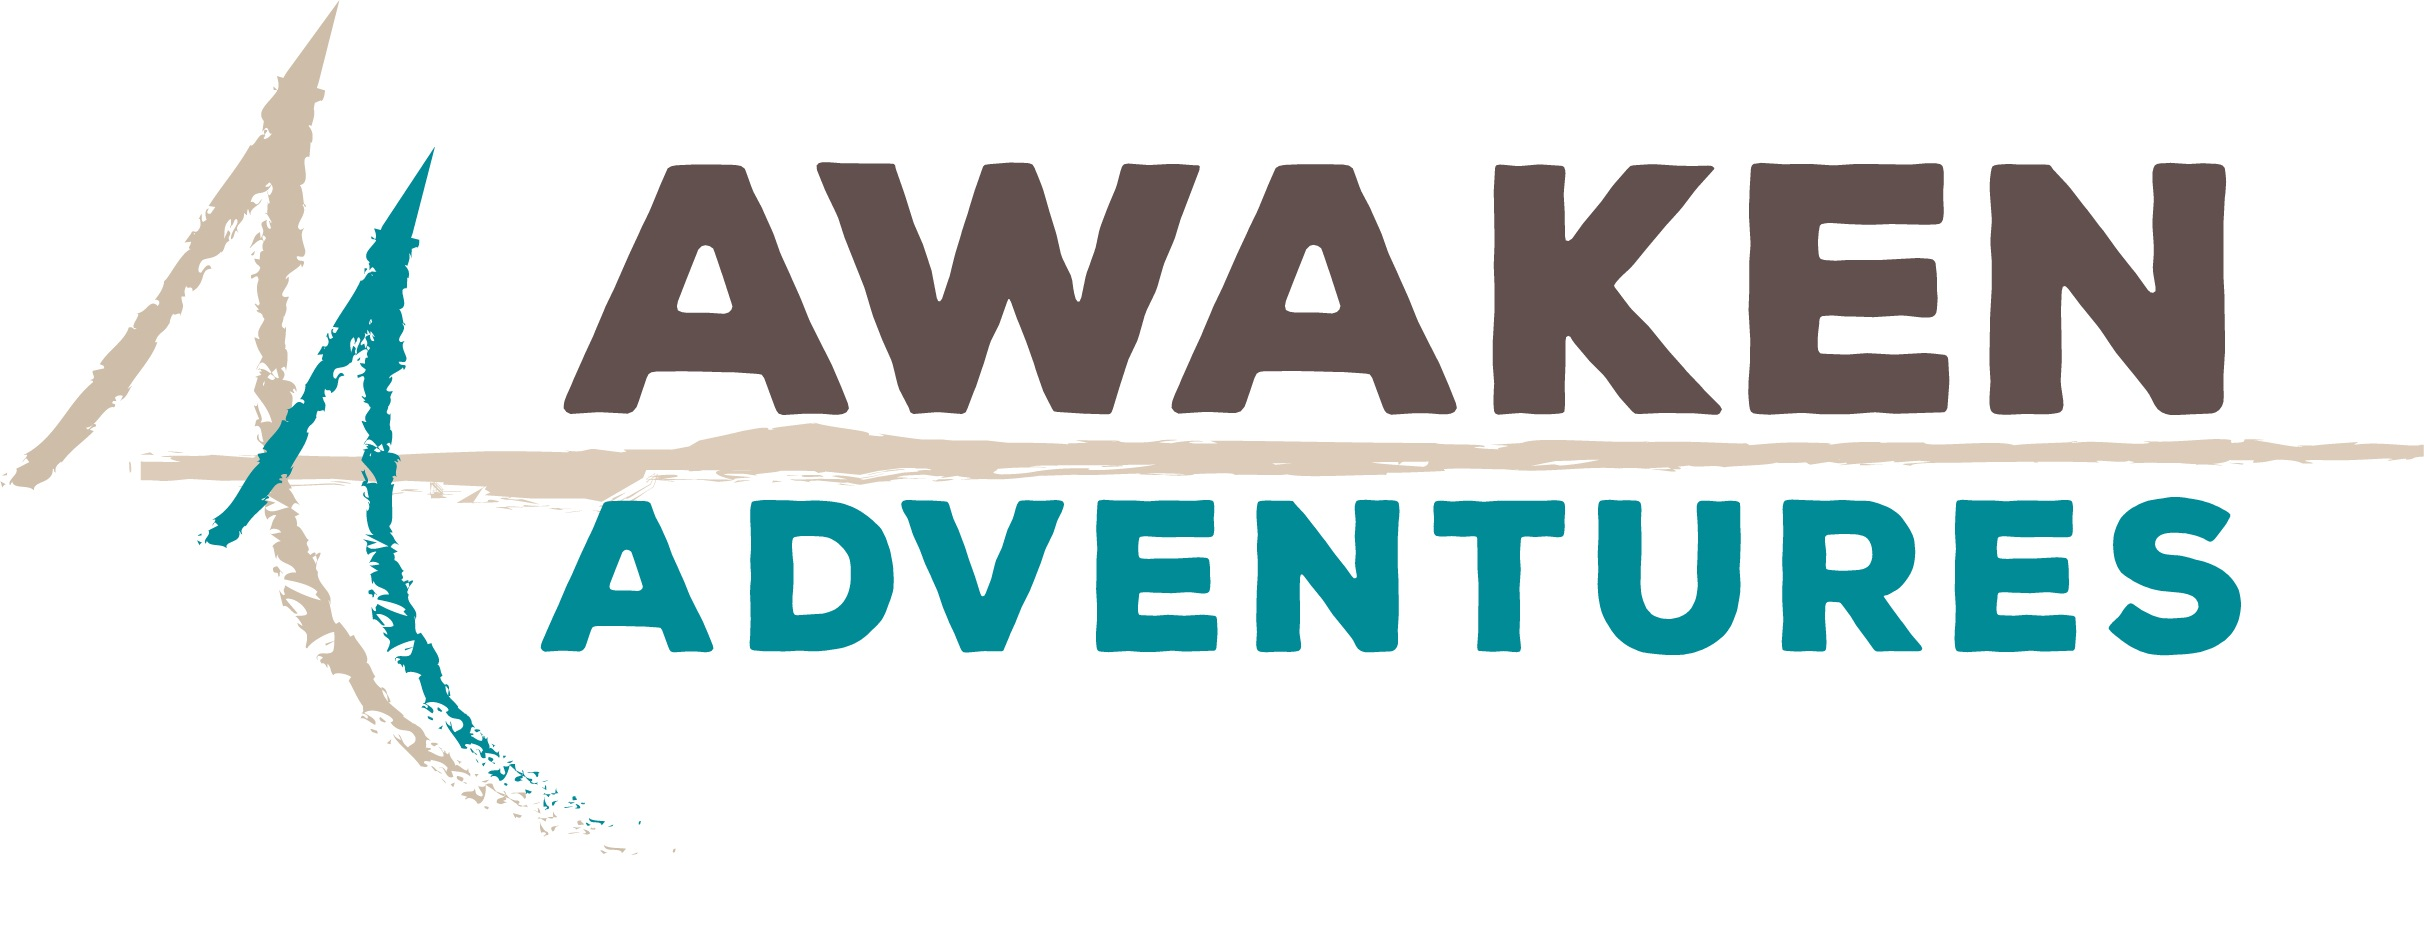 Awaken Adventures – Donegal